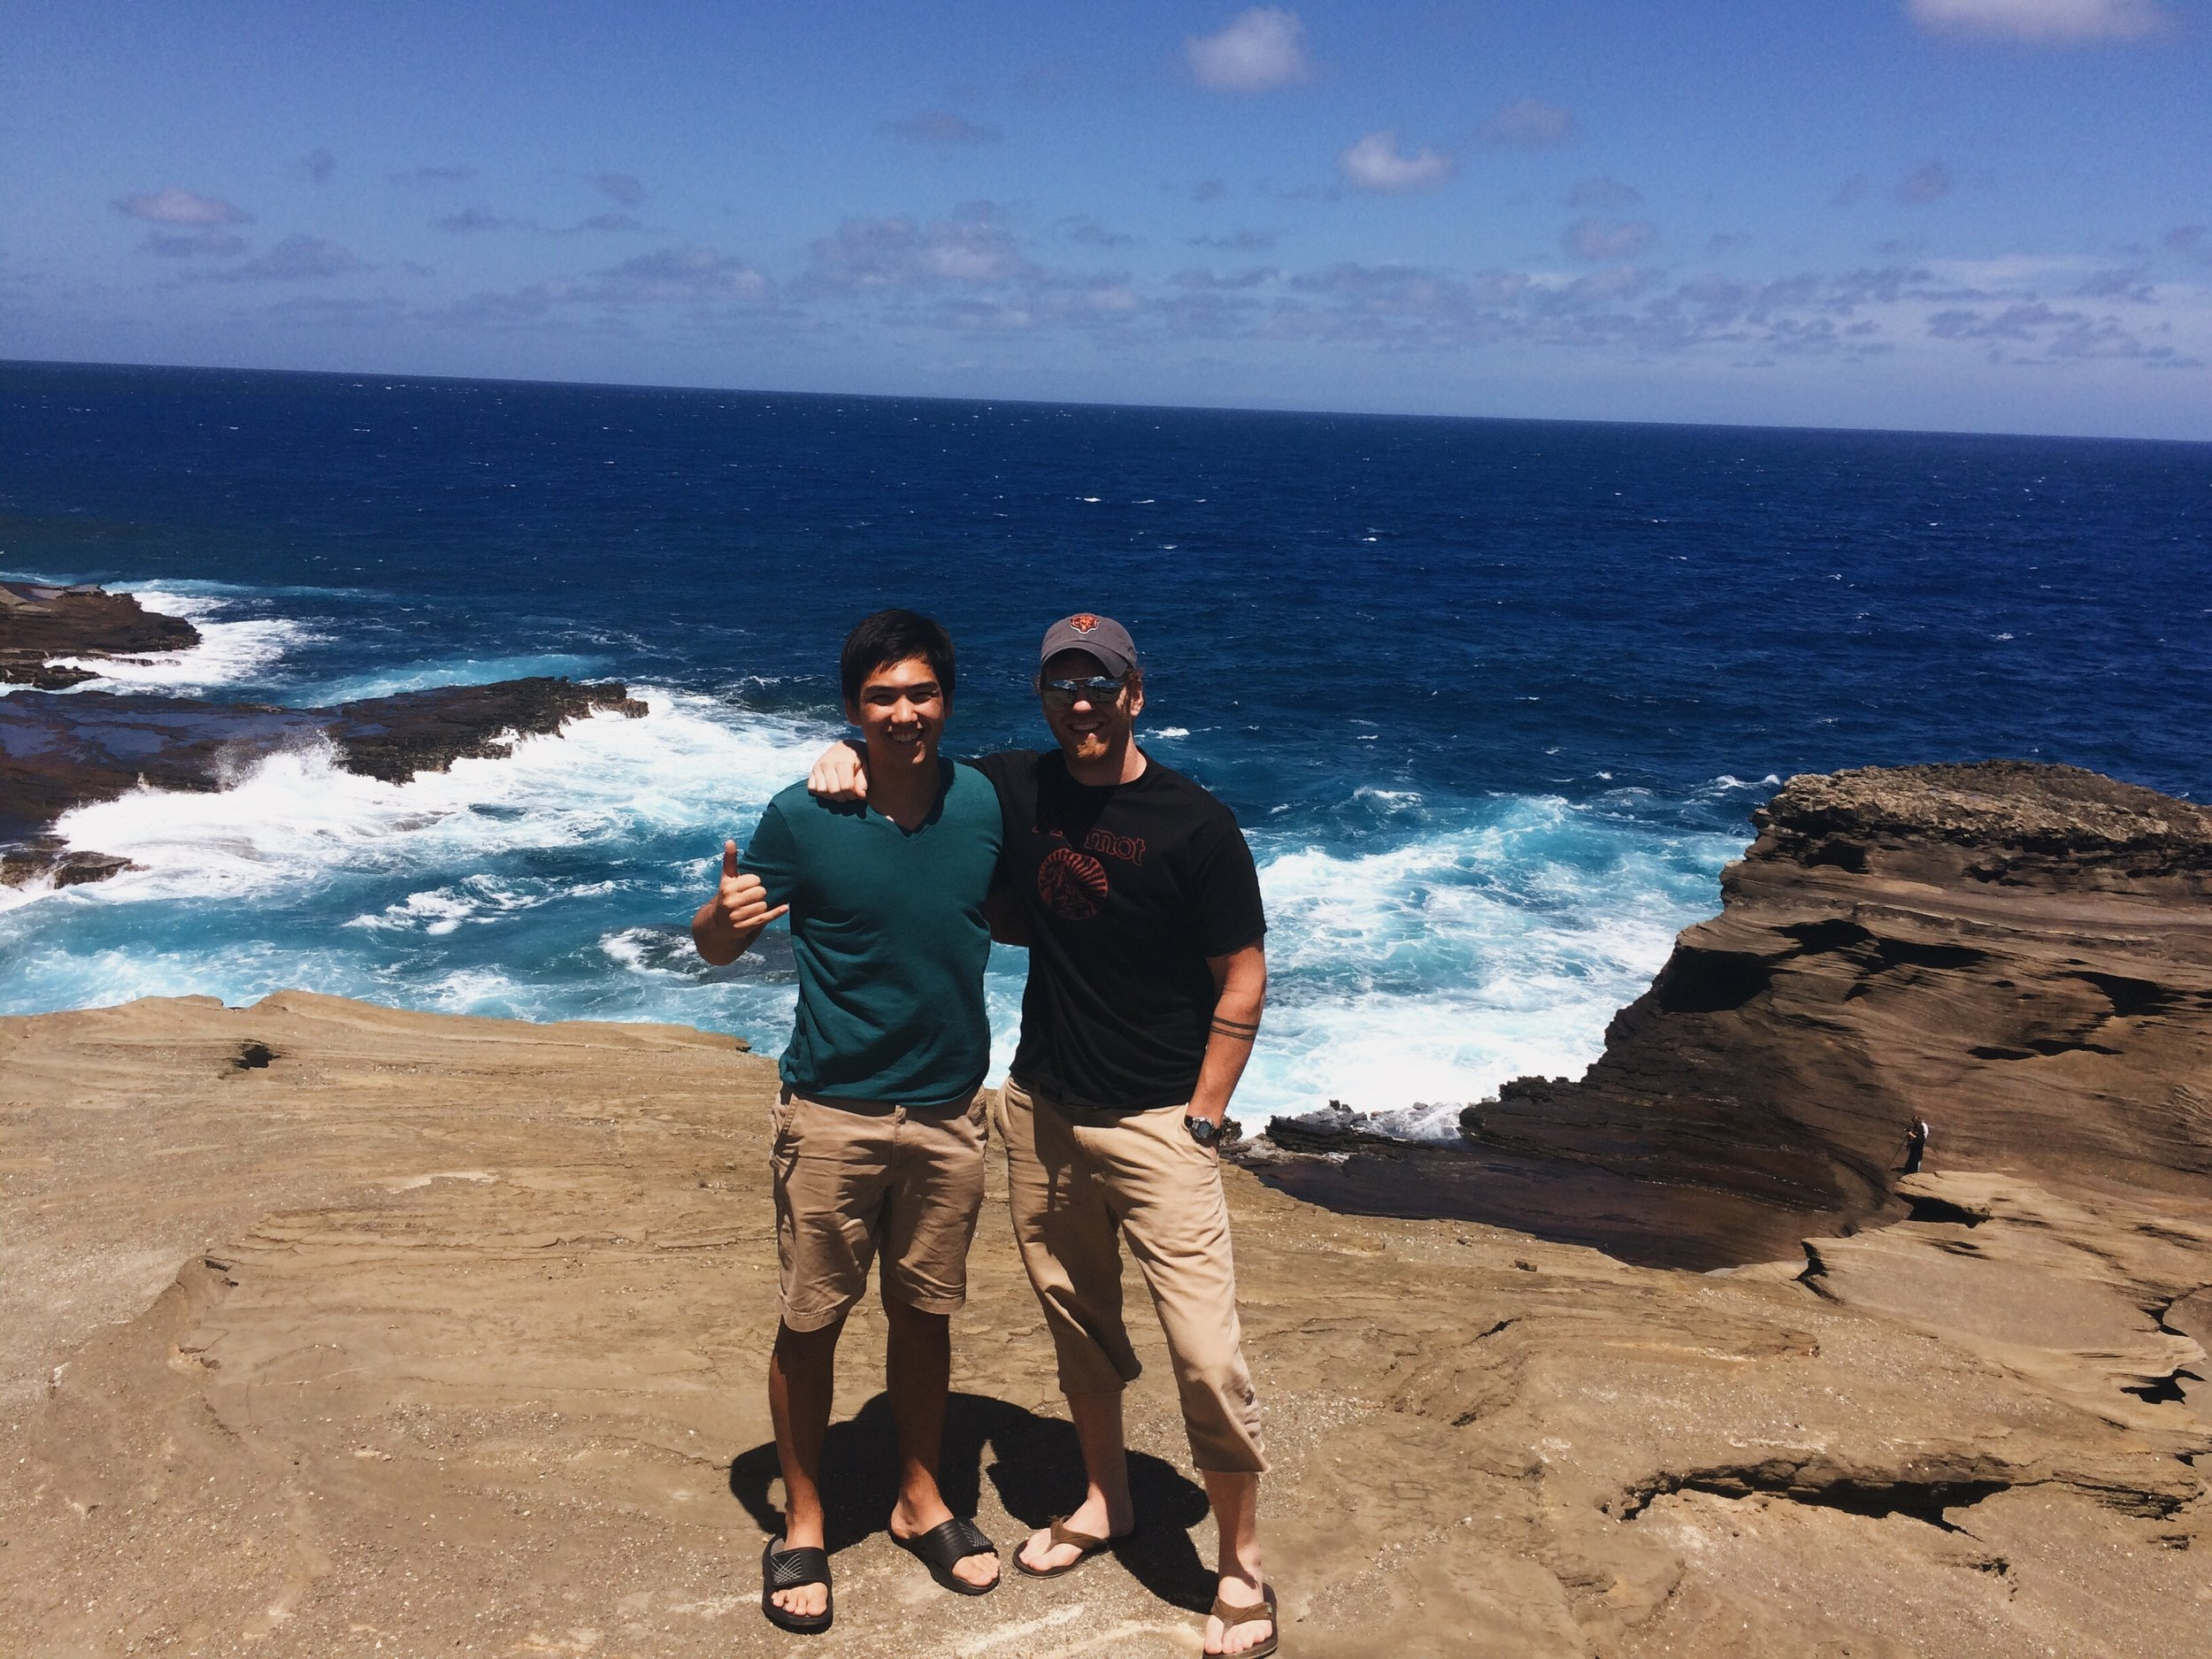 Donovan and me, when I was fortunate enough to visit him and his family in Hawaii last summer. Holy blue ocean!